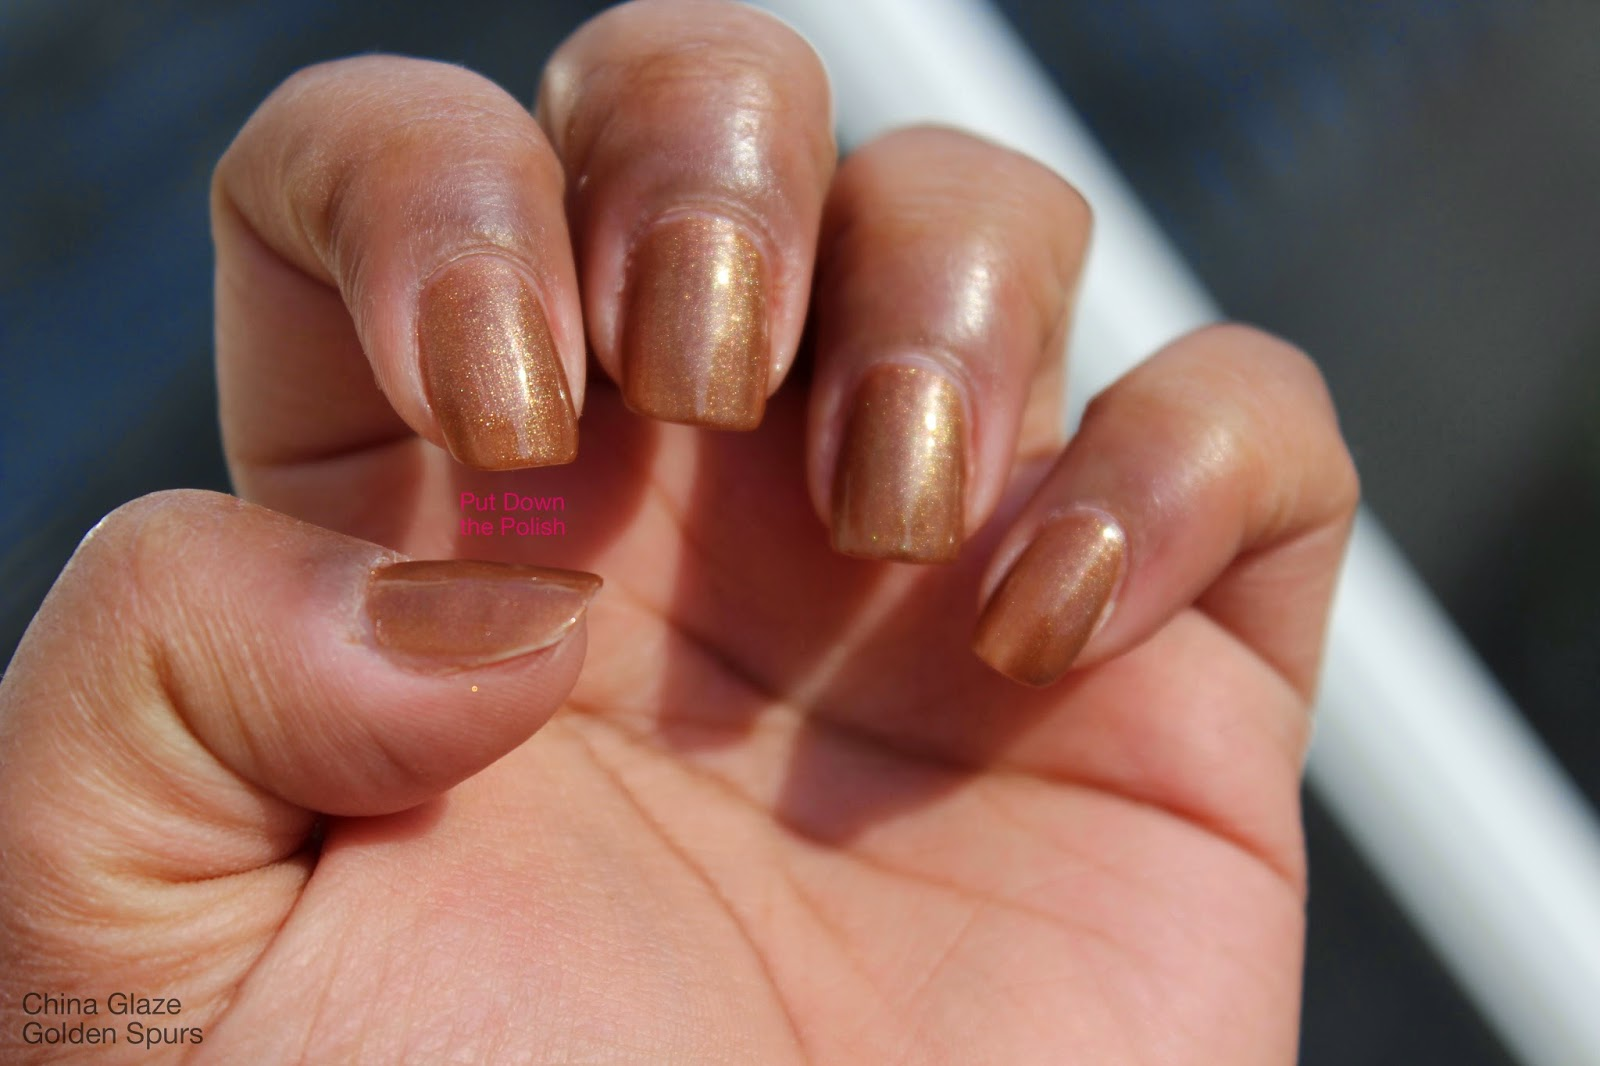 China Glaze Golden Spurs swatch